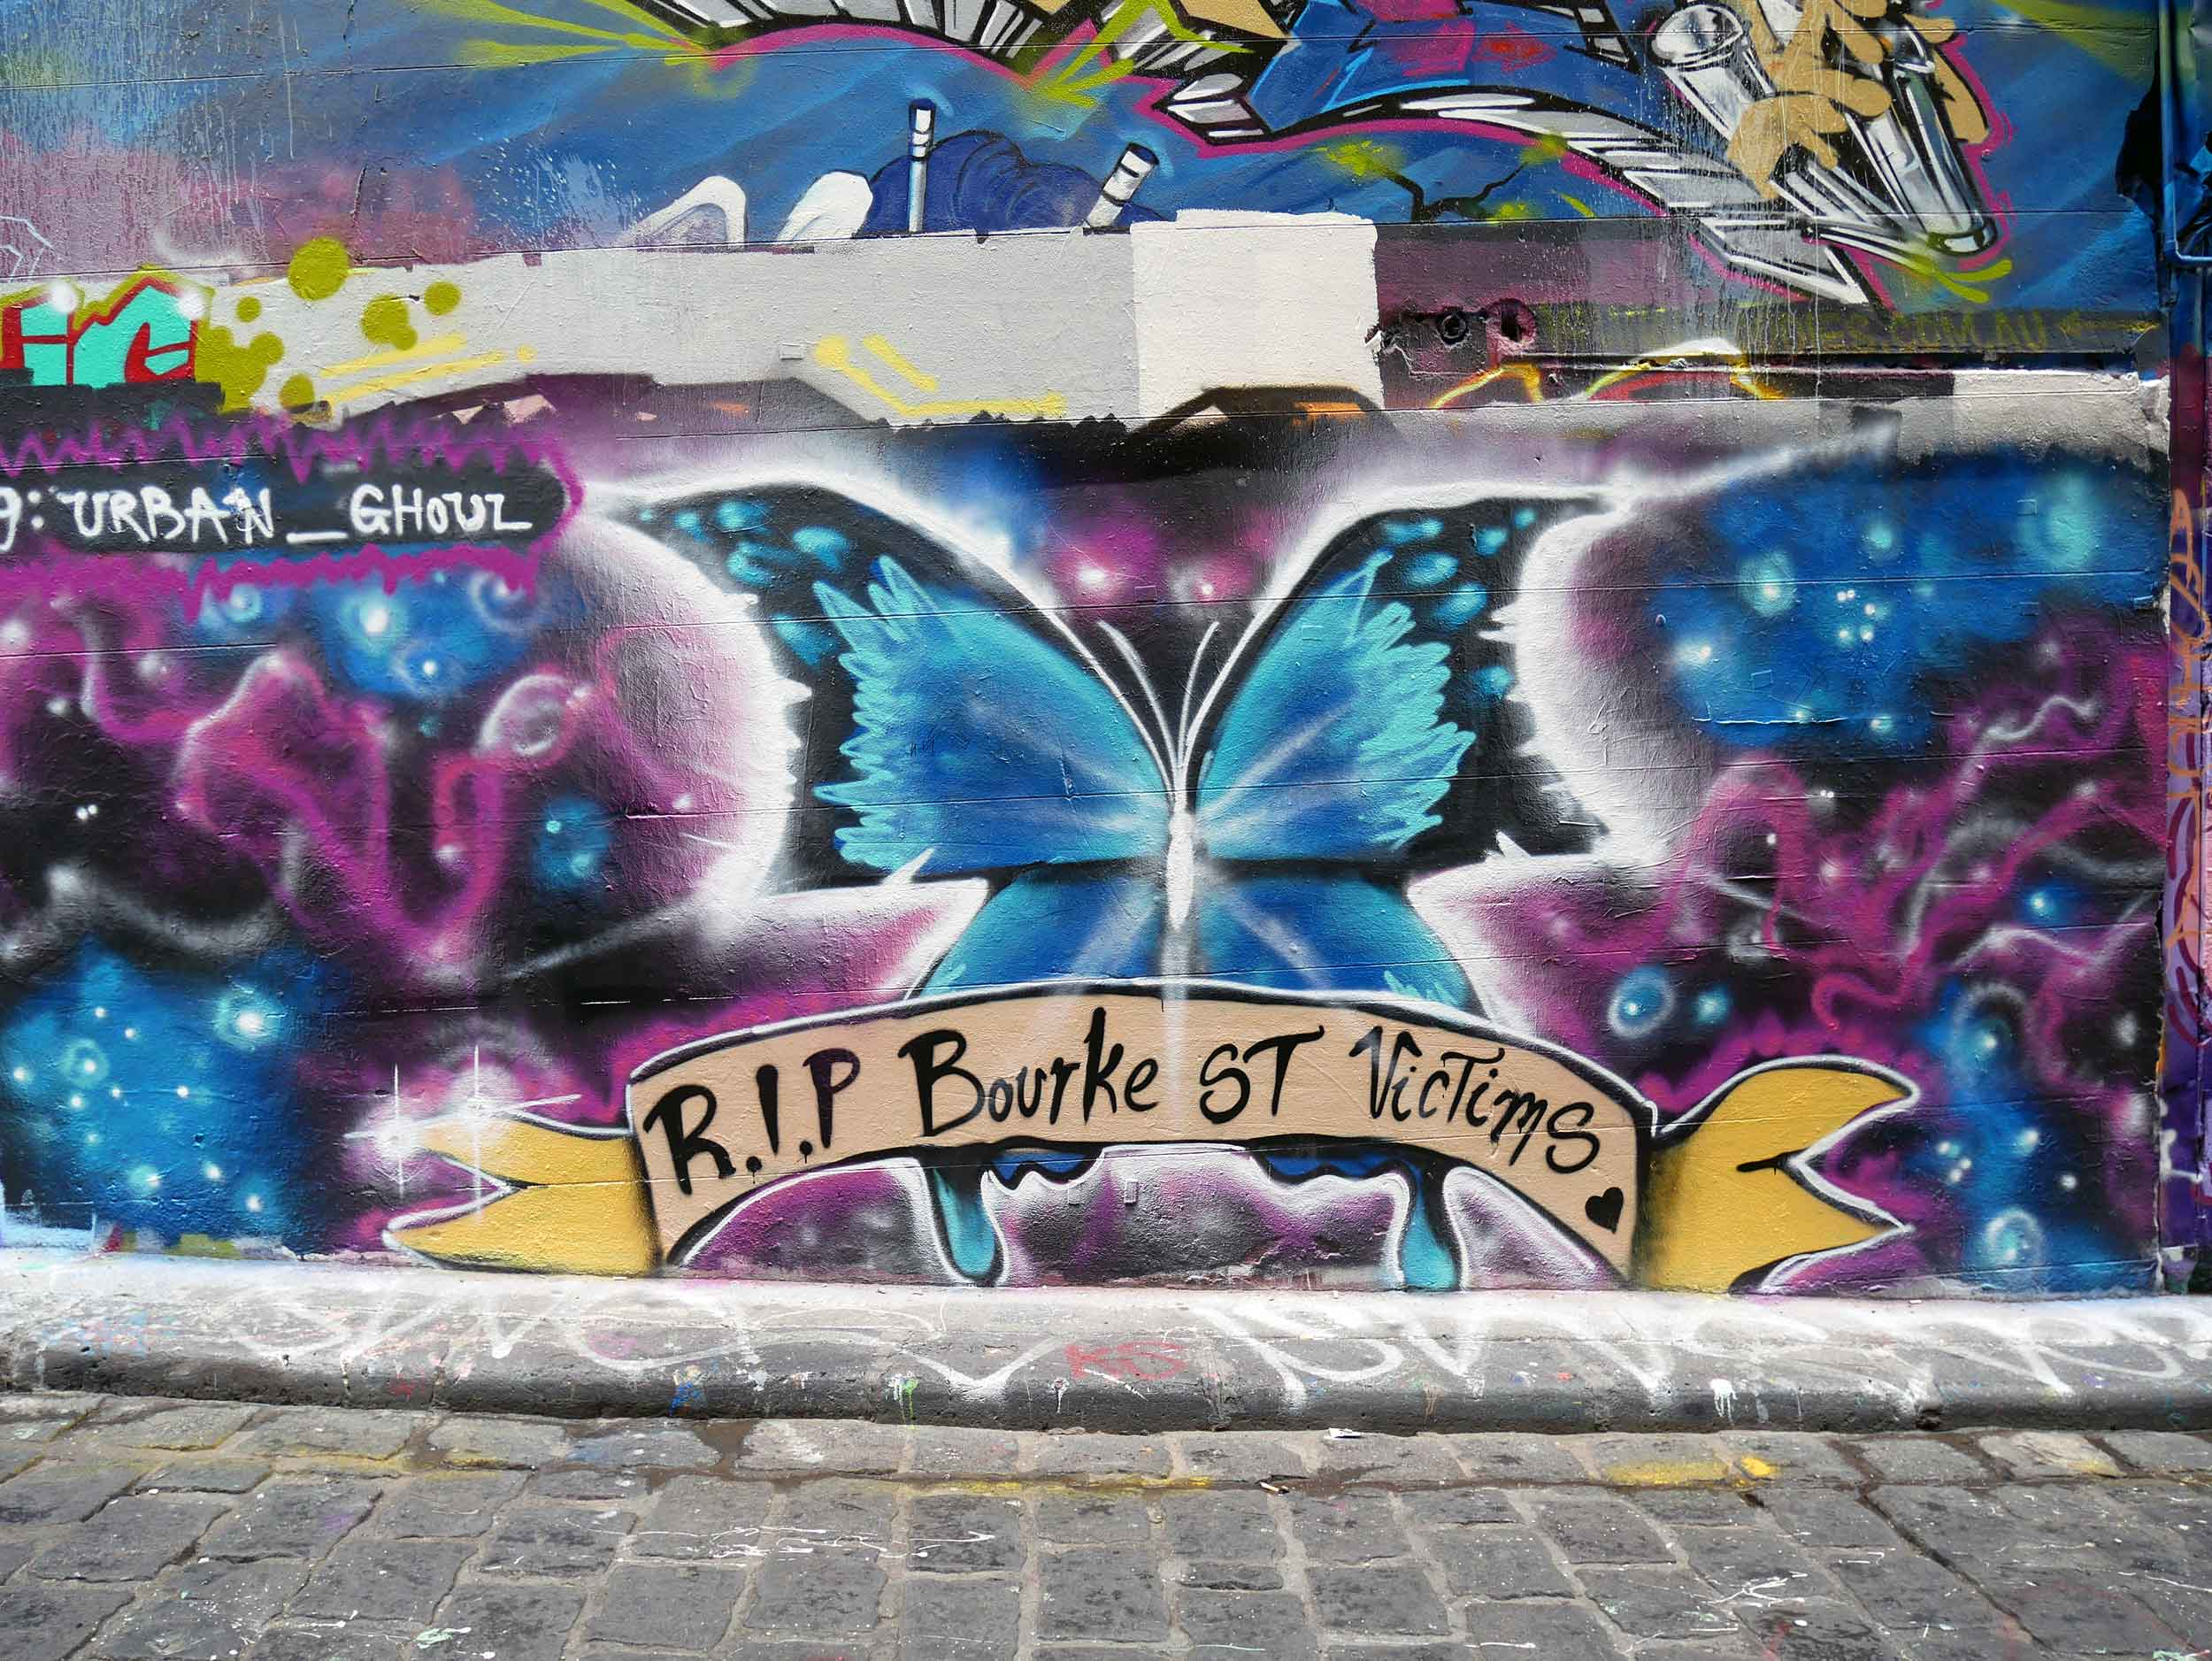 The small street changes daily (hourly?) and already presented a tribute to the victims of the tragic event on Bourke Street just days before (Jan 26).